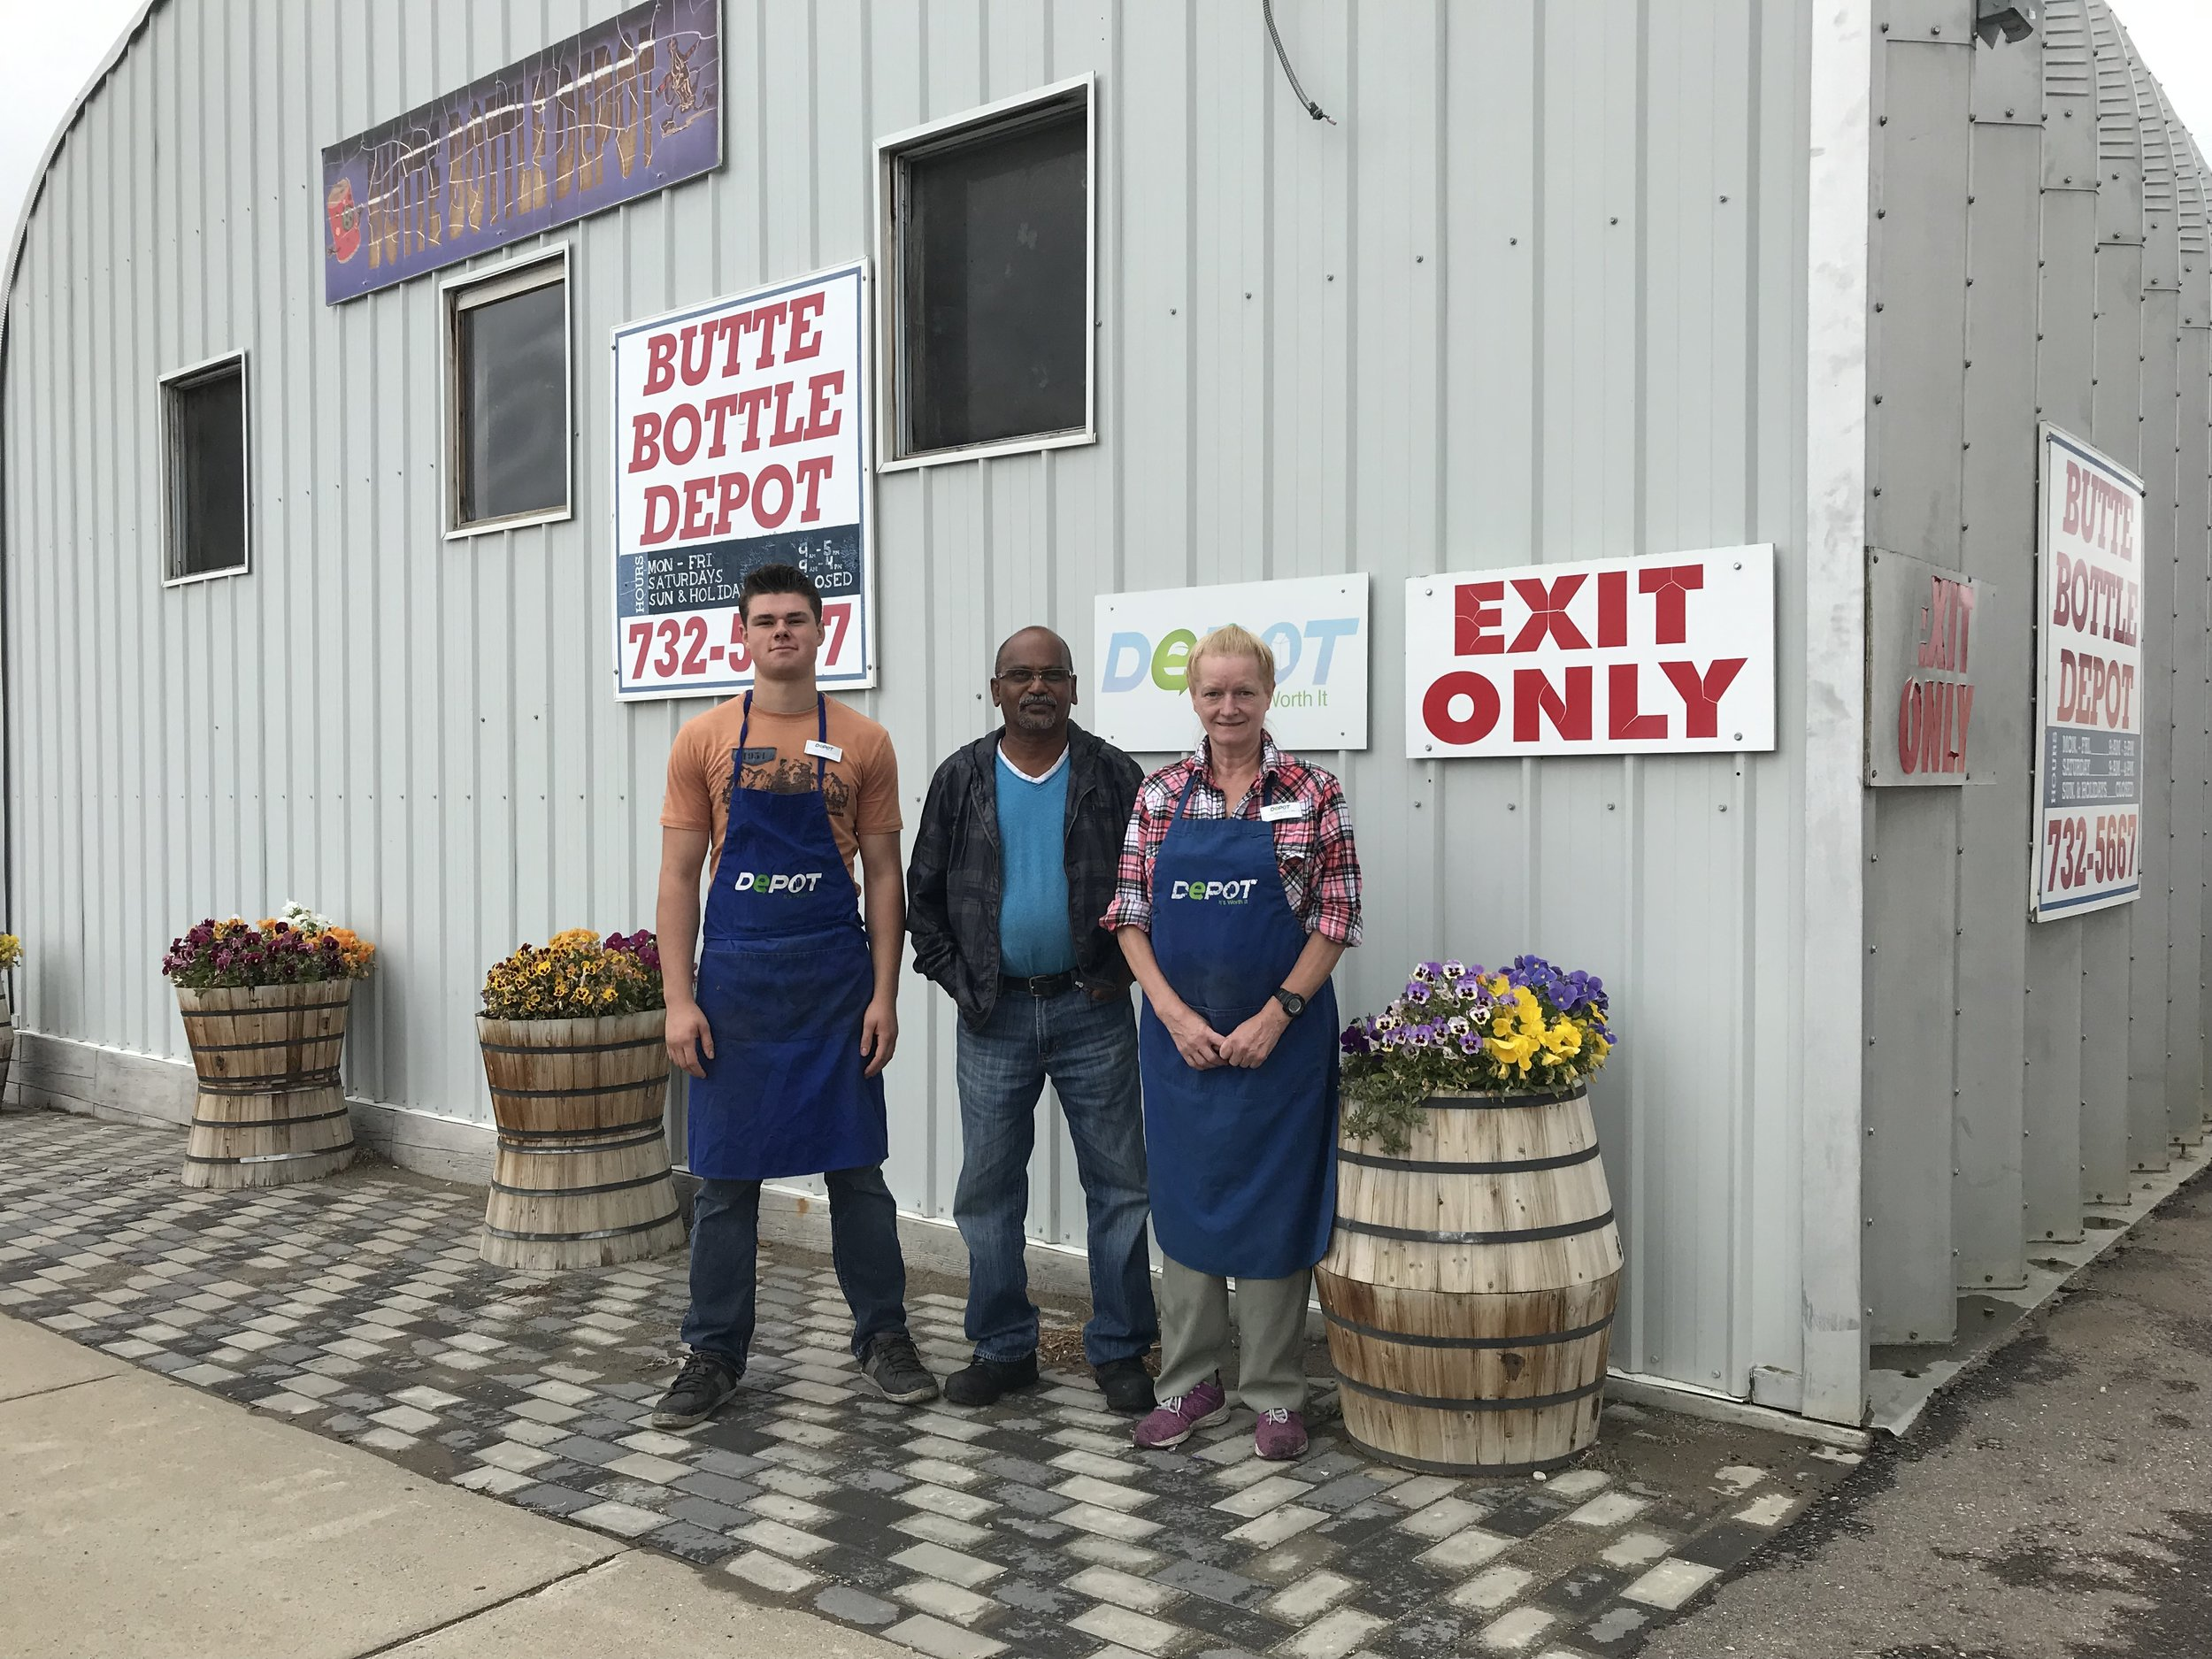 Butte Bottle Depot (Picture Butte)